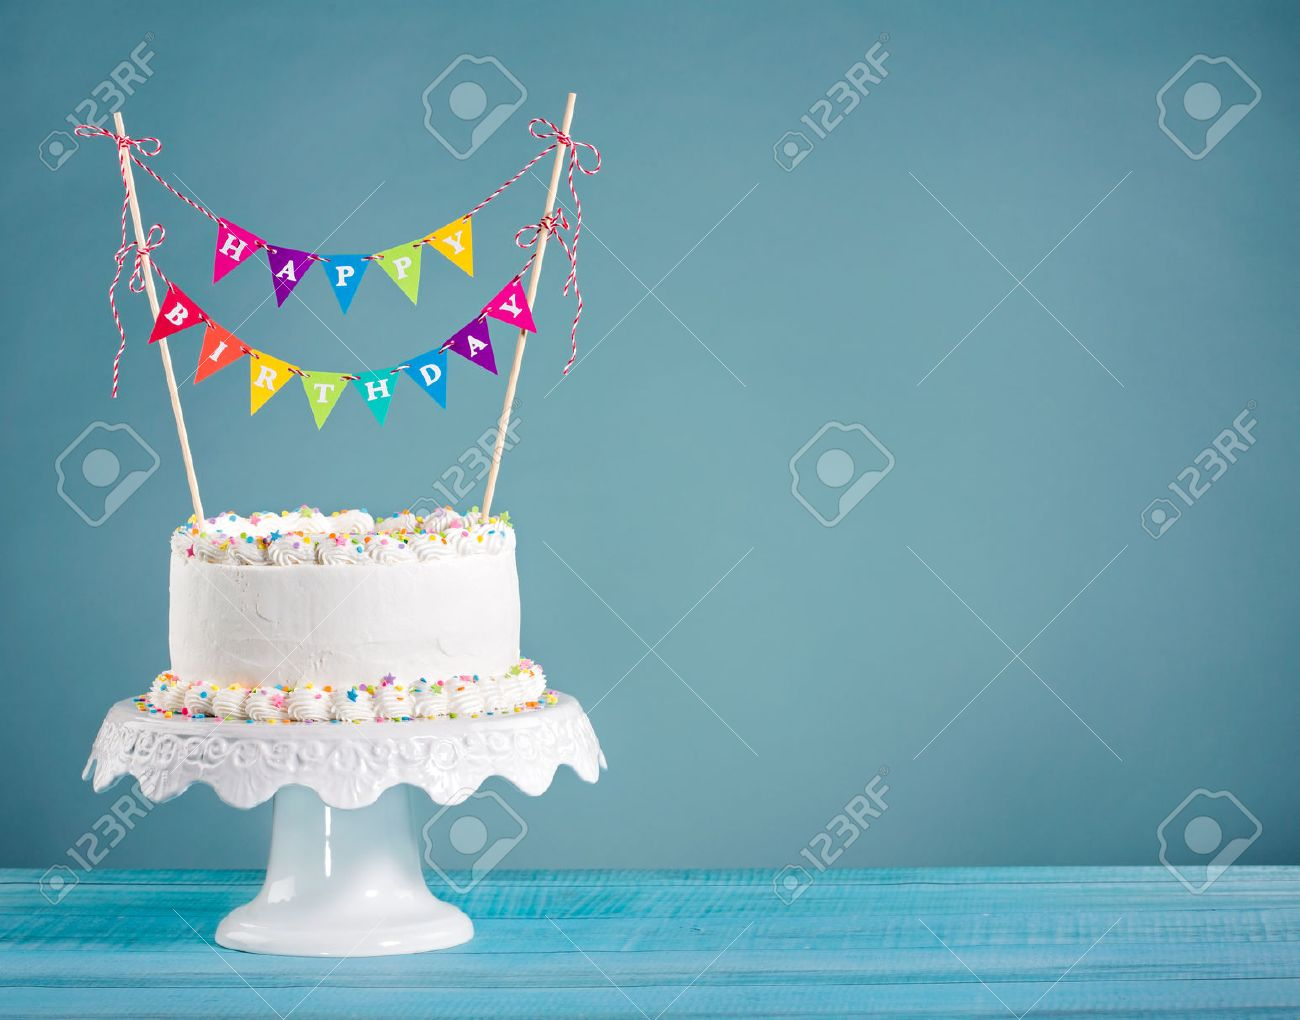 White Buttercream Birthday Cake With Colorful Bunting And Sprinkles